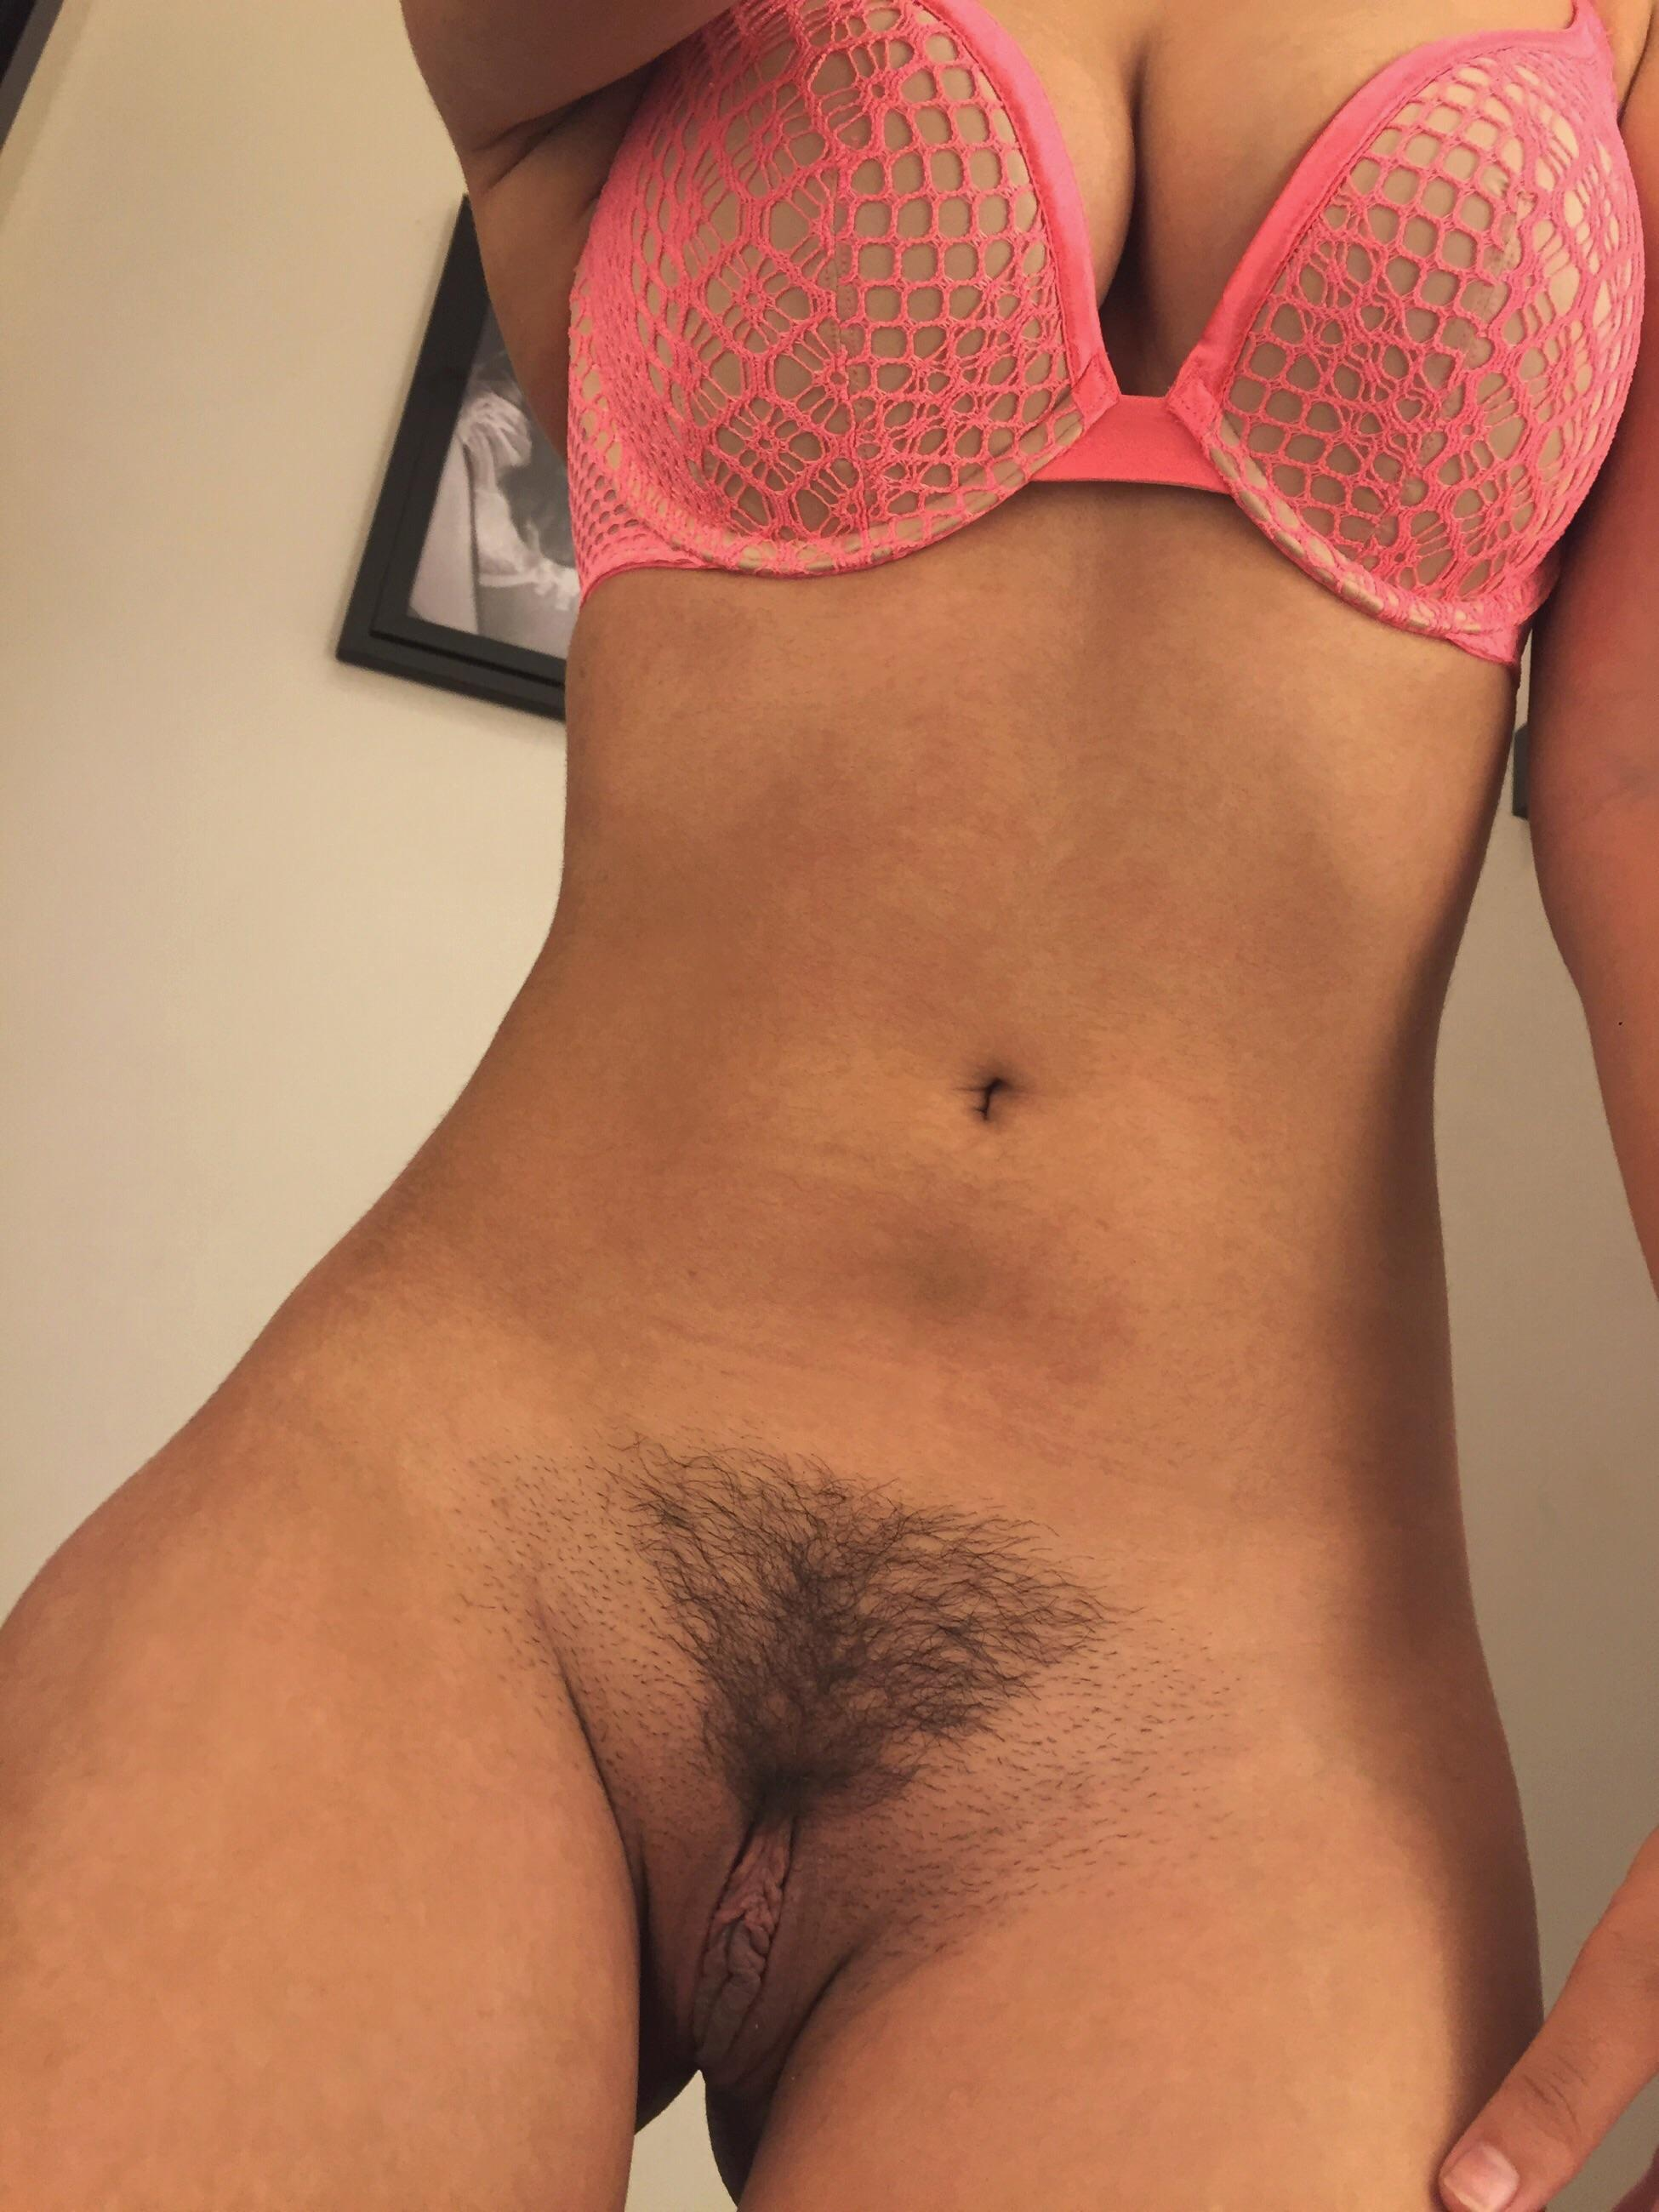 My wife has a big pussy